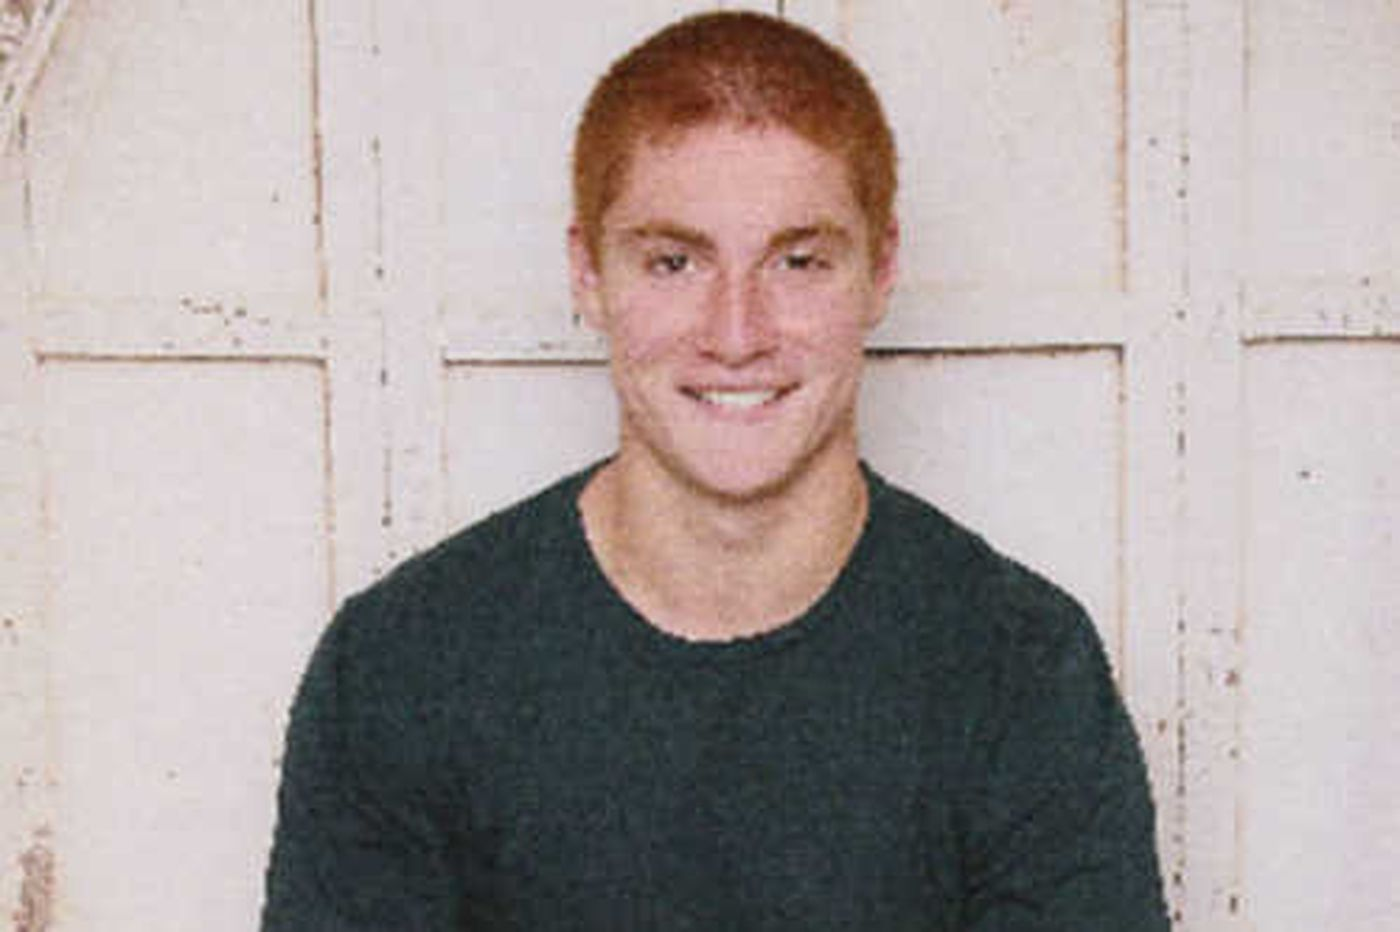 Charges likely in Penn State frat death, prosecutors say